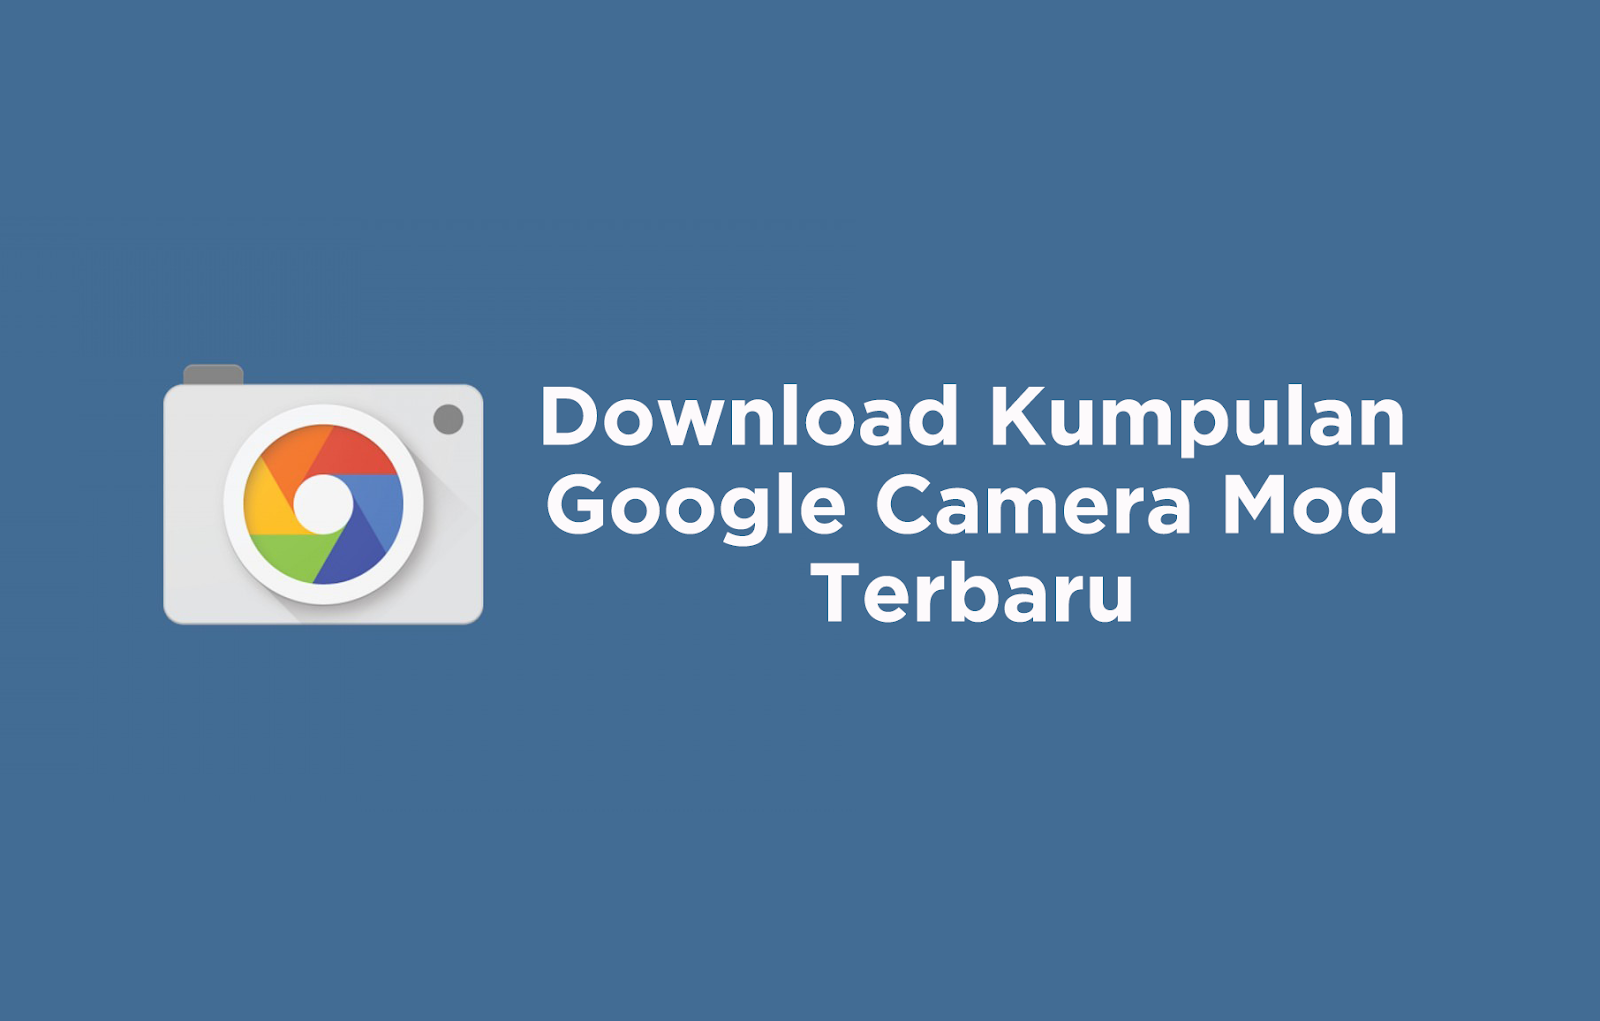 Download Kumpulan Google Camera Mod Terbaru